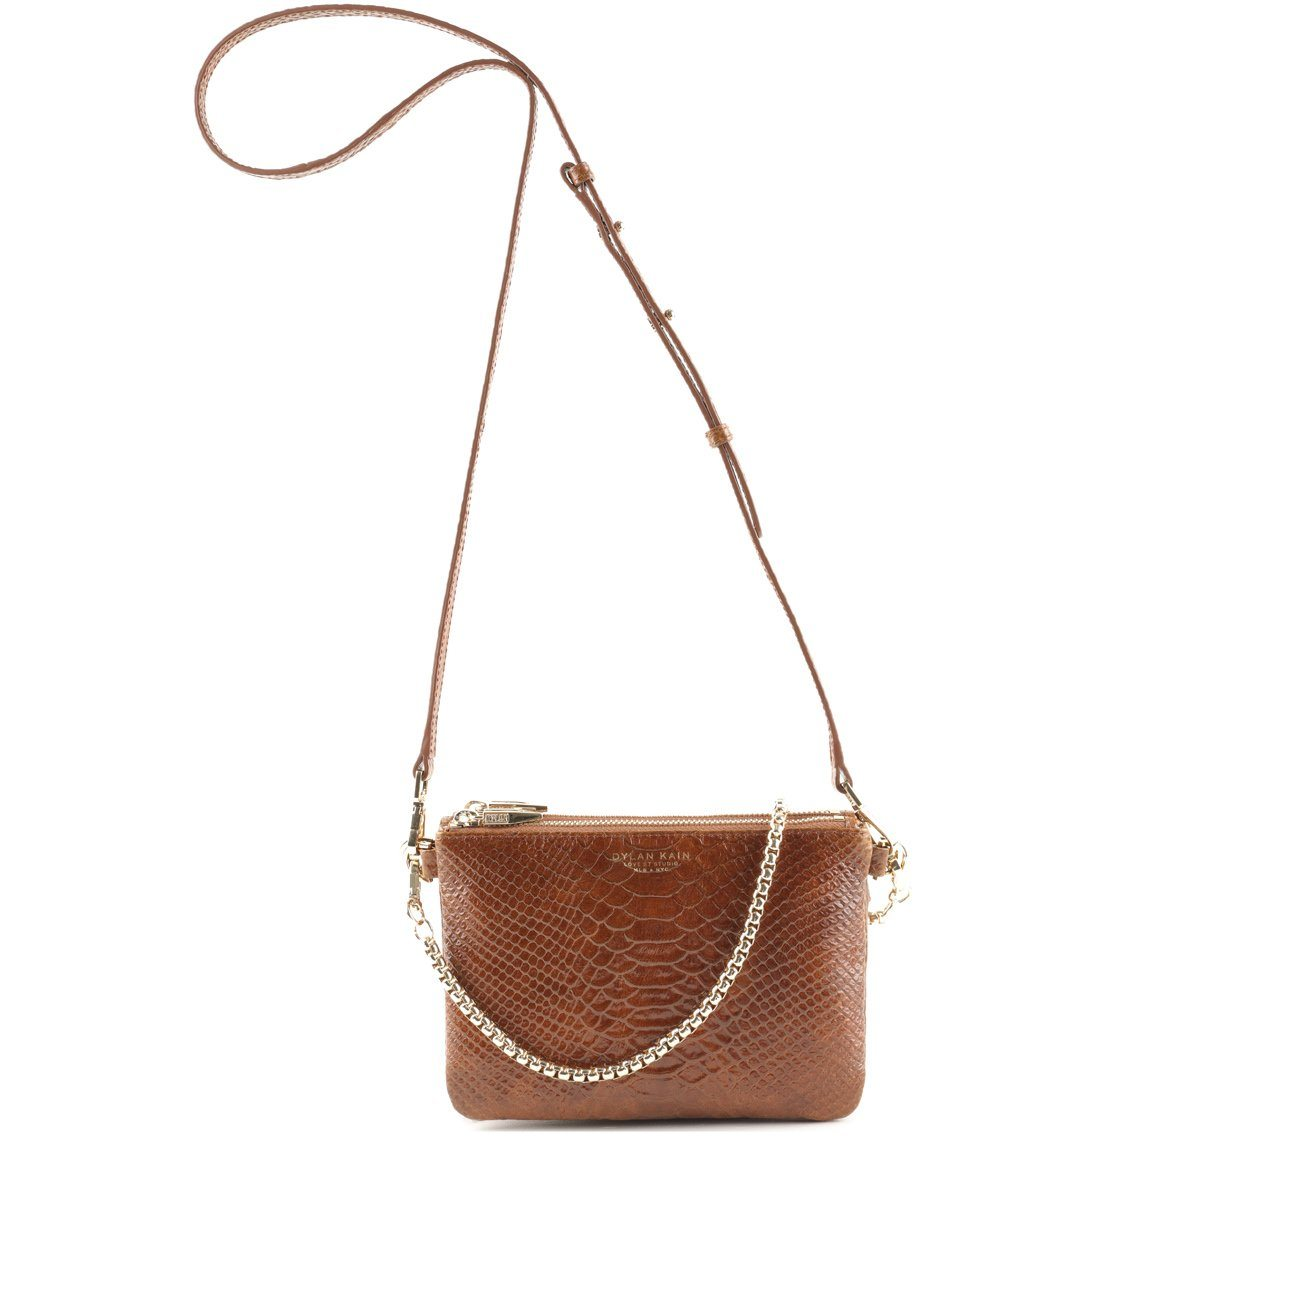 The LSC Caramel Python Bag Light Gold Bag Dylan Kain